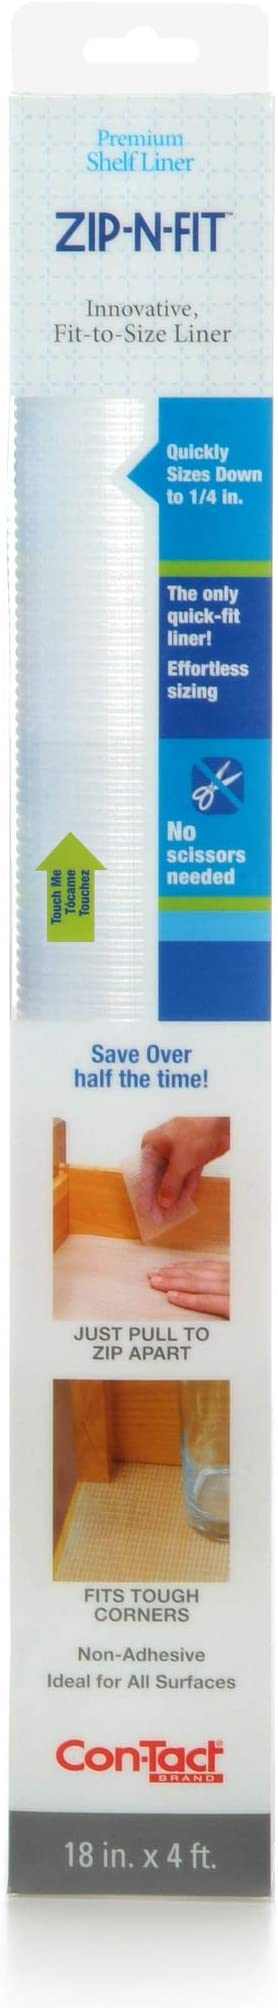 2 DUCK Brank Clear Grip Non Adhesive Liner Shelf Liner Drawer Liner 4 SQ FT.